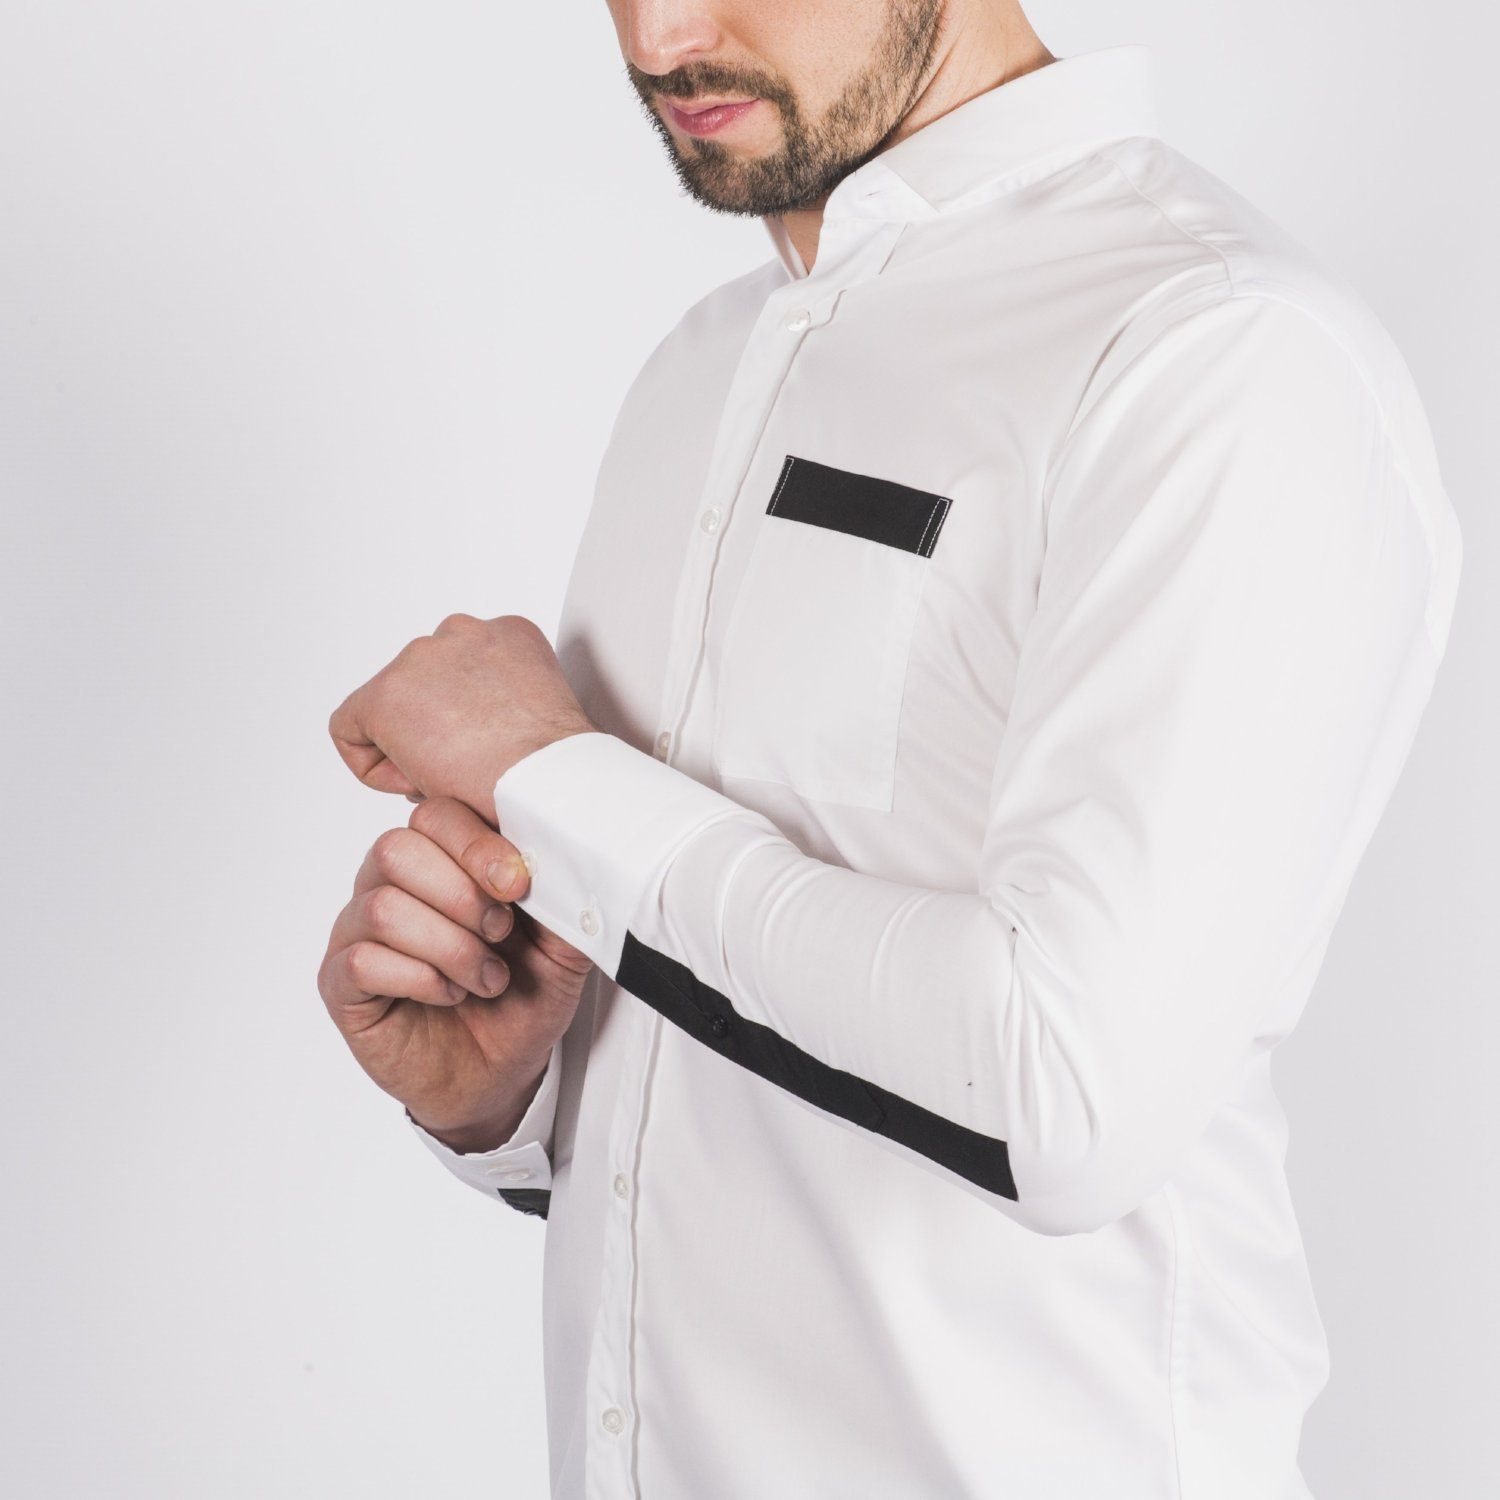 White Long Sleeved Shirt